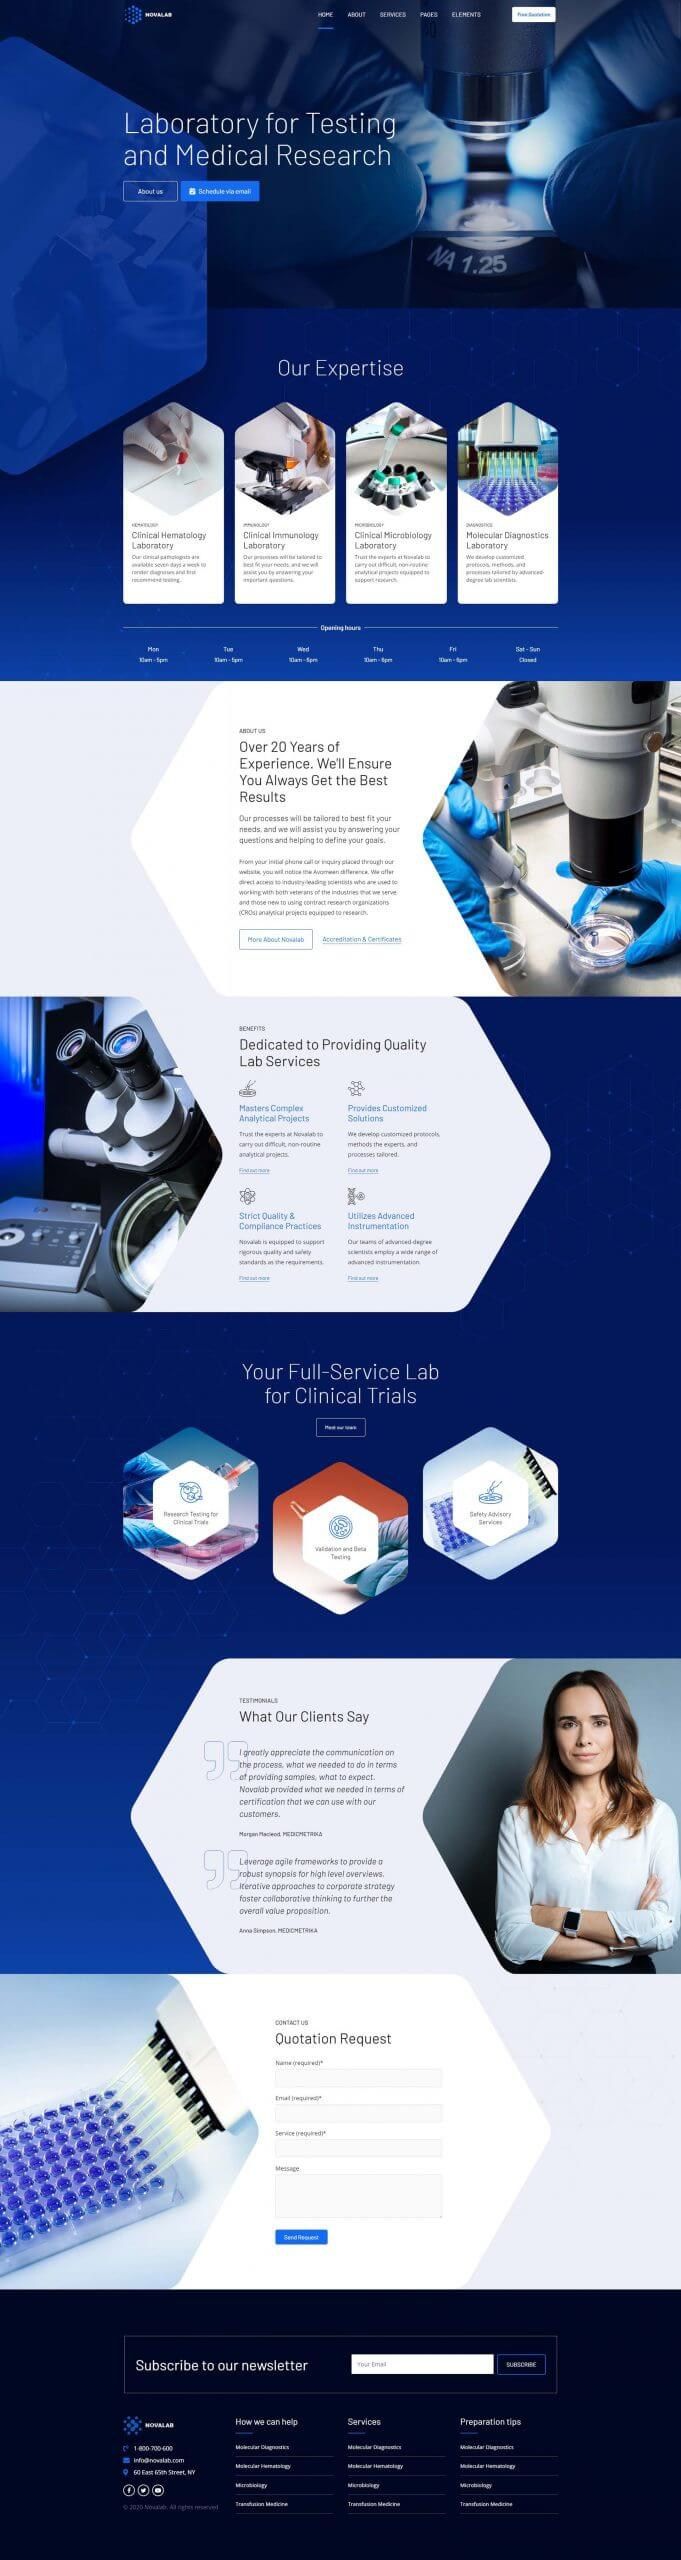 http://novalab.bold-themes.com/lab-s/wp-content/uploads/sites/9/2020/06/Home-scaled-1.jpg